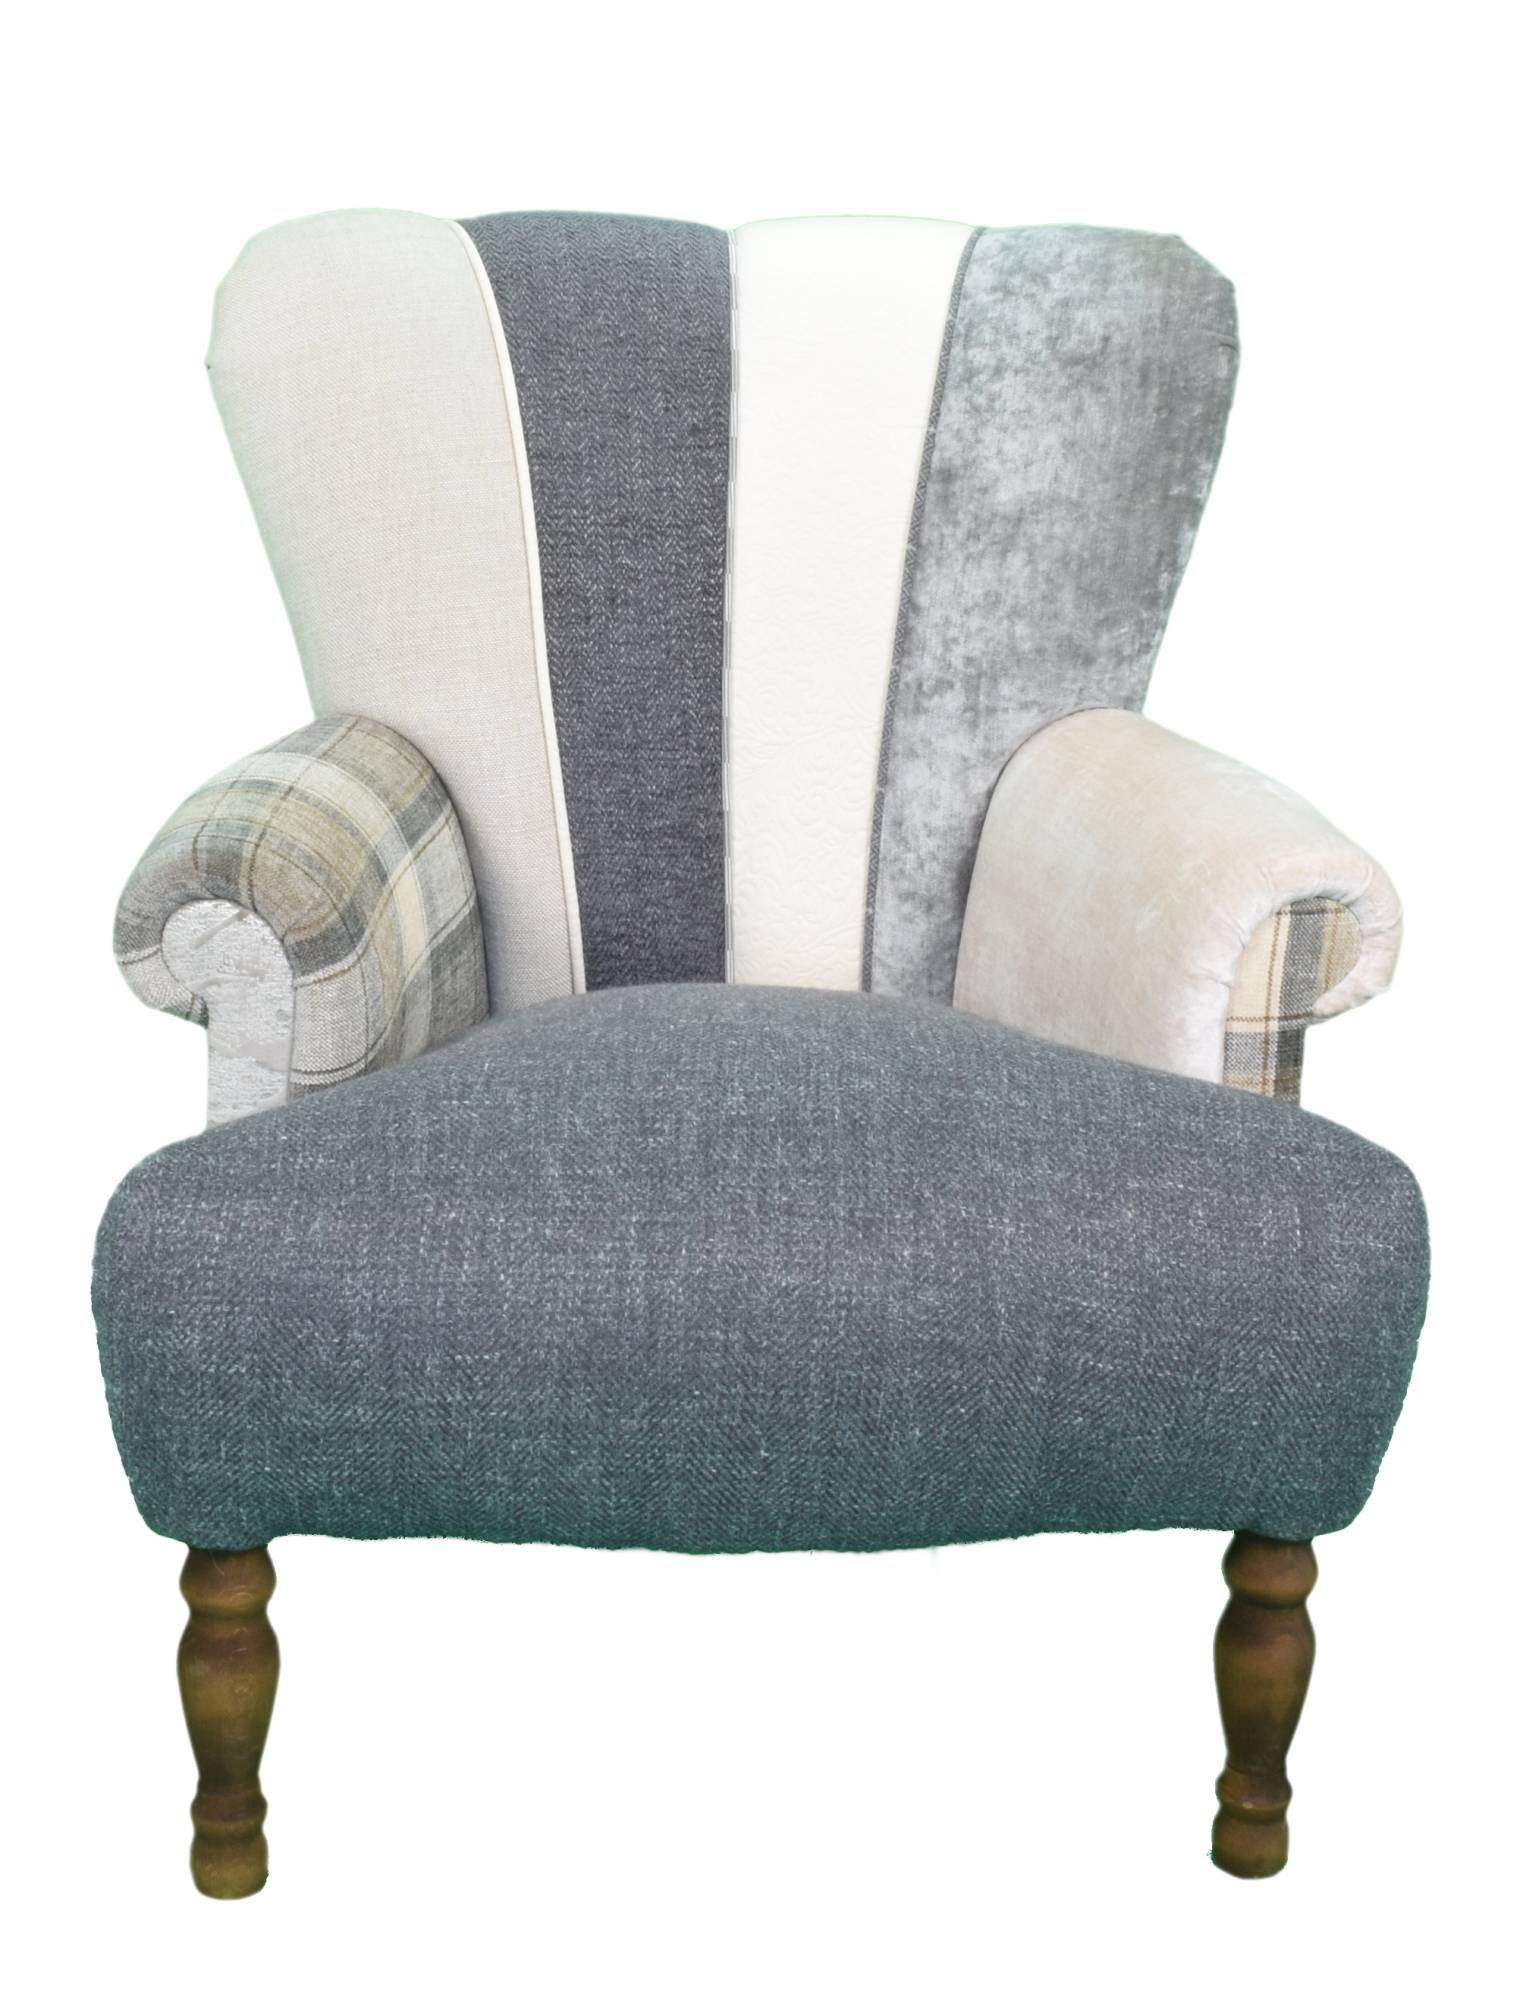 Sofas & Chairs from Peter Betteridge The Bed Experts